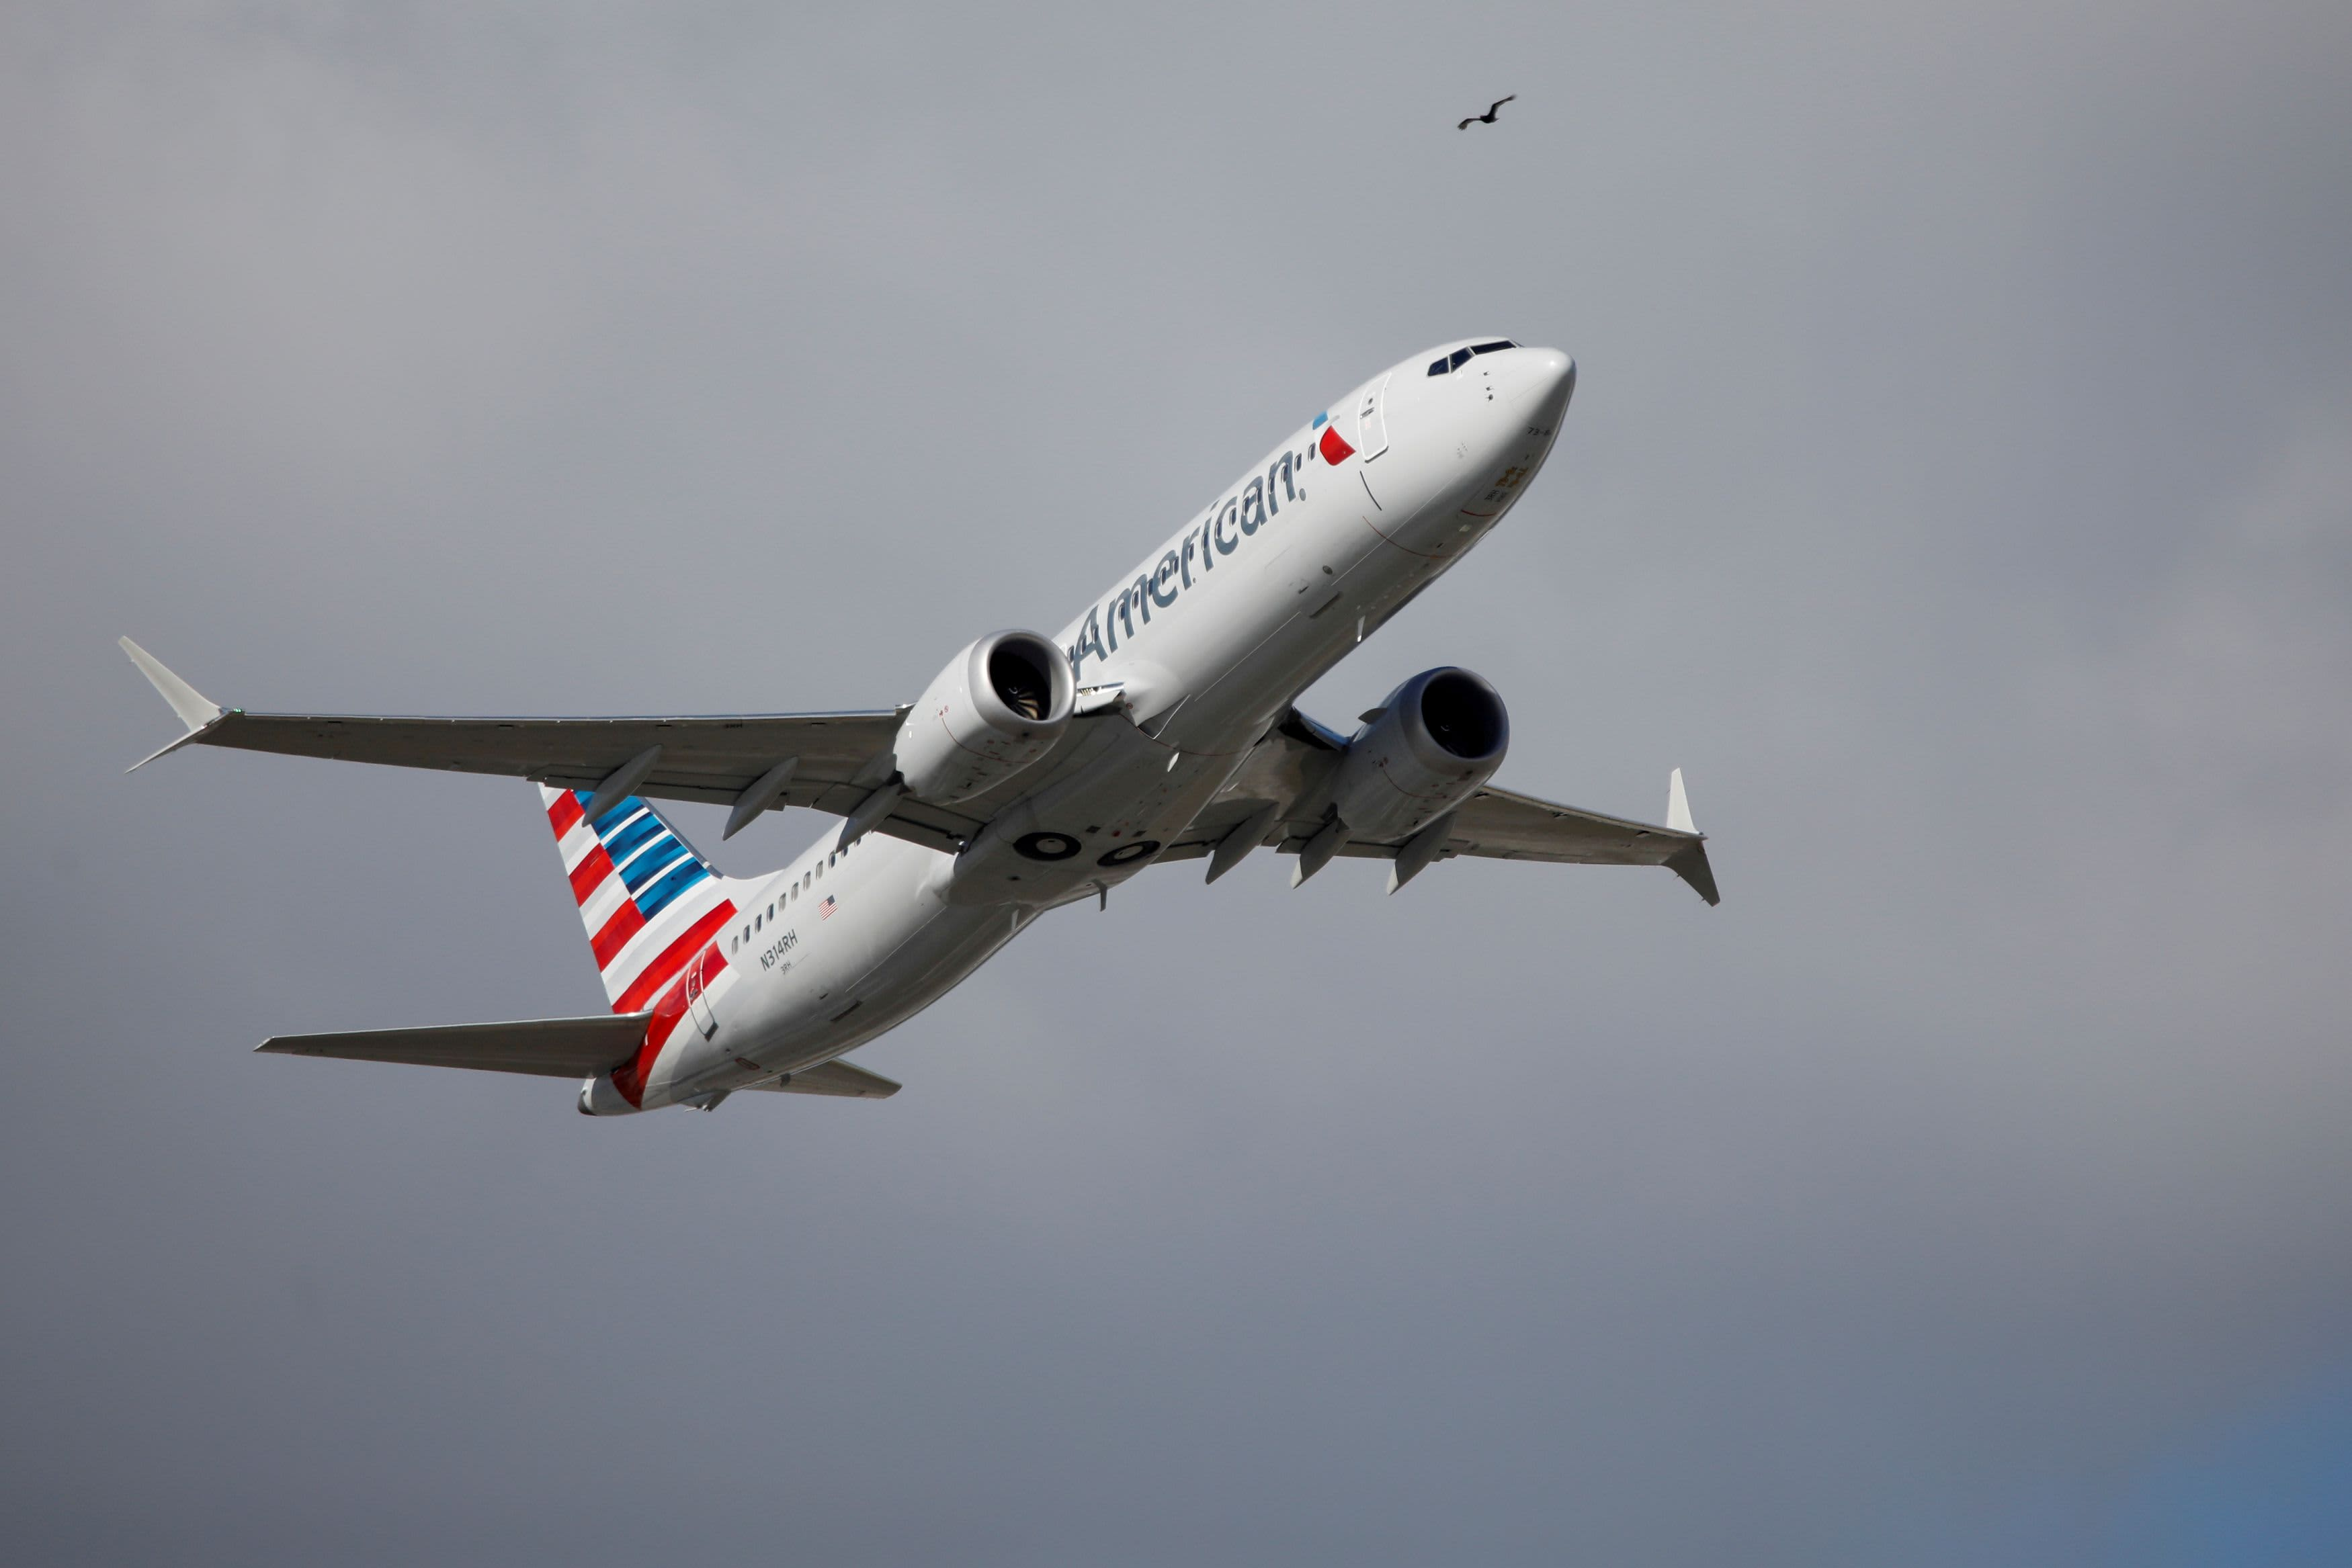 American Airlines to resume hiring pilots this fall as travel demand recovers